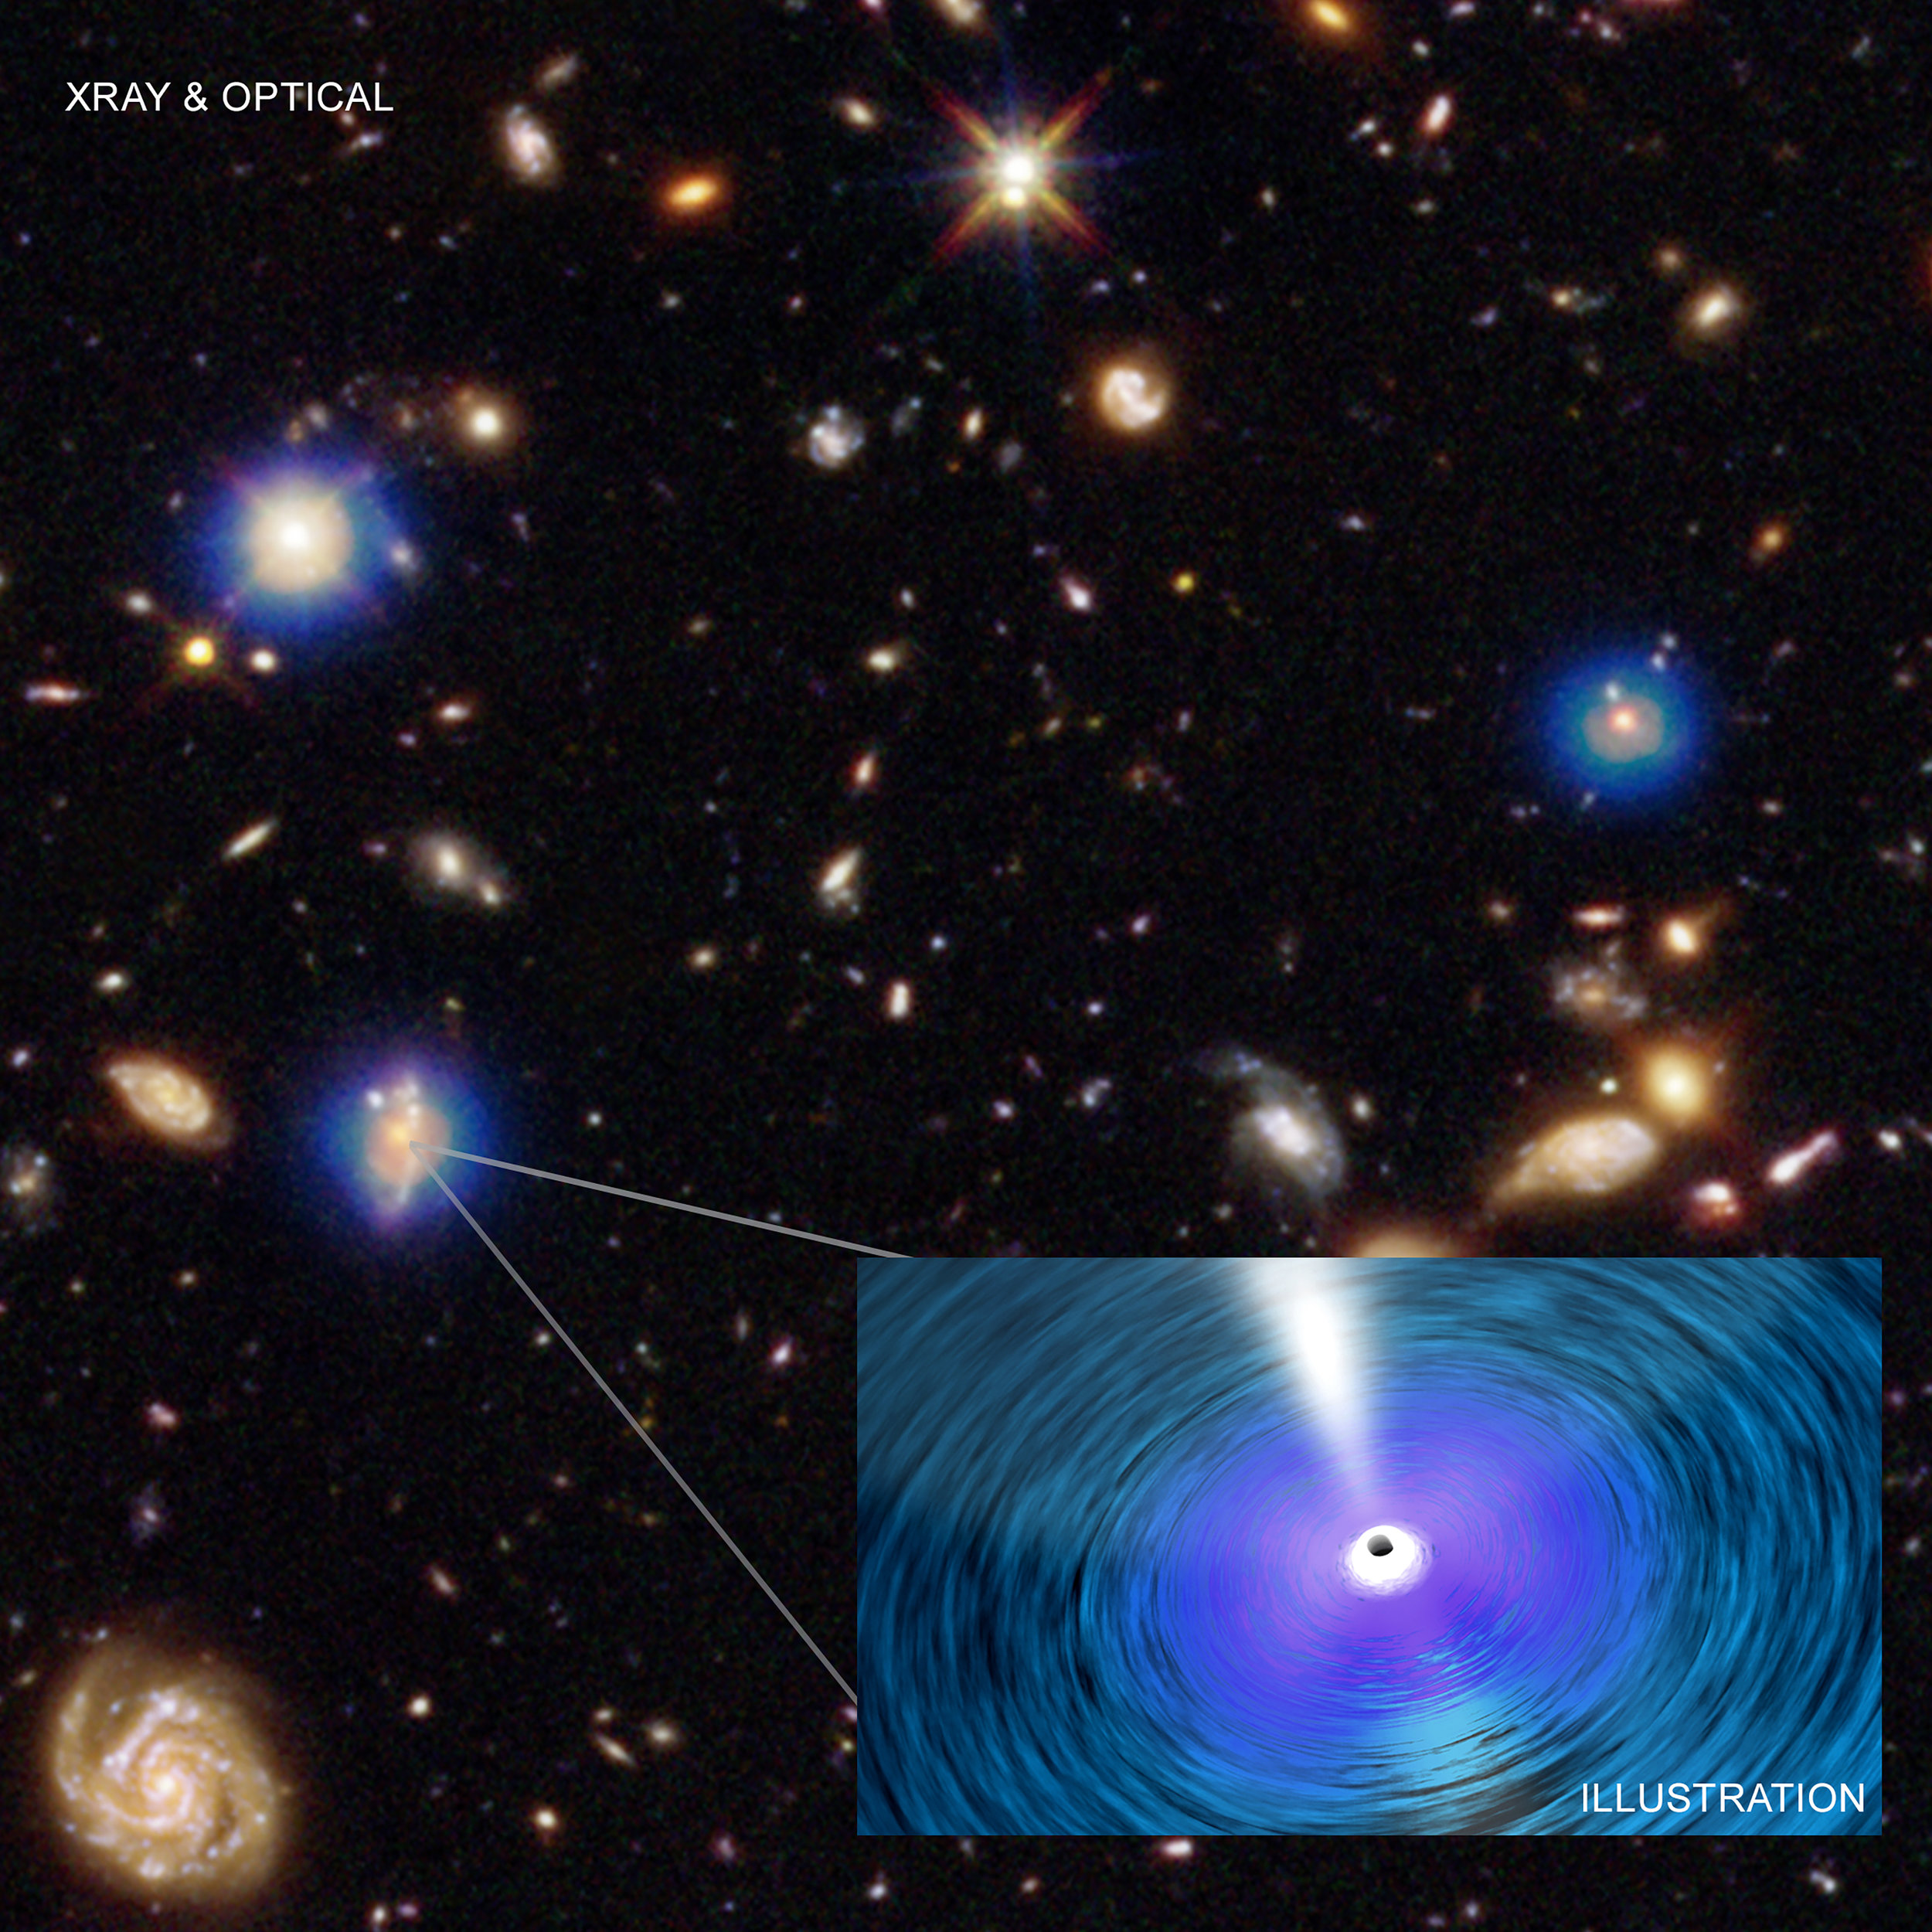 In this graphic an image from the Chandra Deep Field-South is shown. The Chandra image (blue) is the deepest ever obtained in X-rays. It has been combined with an optical and infrared image from the Hubble Space Telescope (HST), colored red, green, and blue. Each Chandra source is produced by hot gas falling towards a supermassive black hole in the center of the host galaxy, as depicted in the artist's illustration. - Image Credits: NASA/CXC/Penn. State/G. Yang et al and NASA/CXC/ICE/M. Mezcua et al.; Optical: NASA/STScI; Illustration: NASA/CXC/A. Jubett